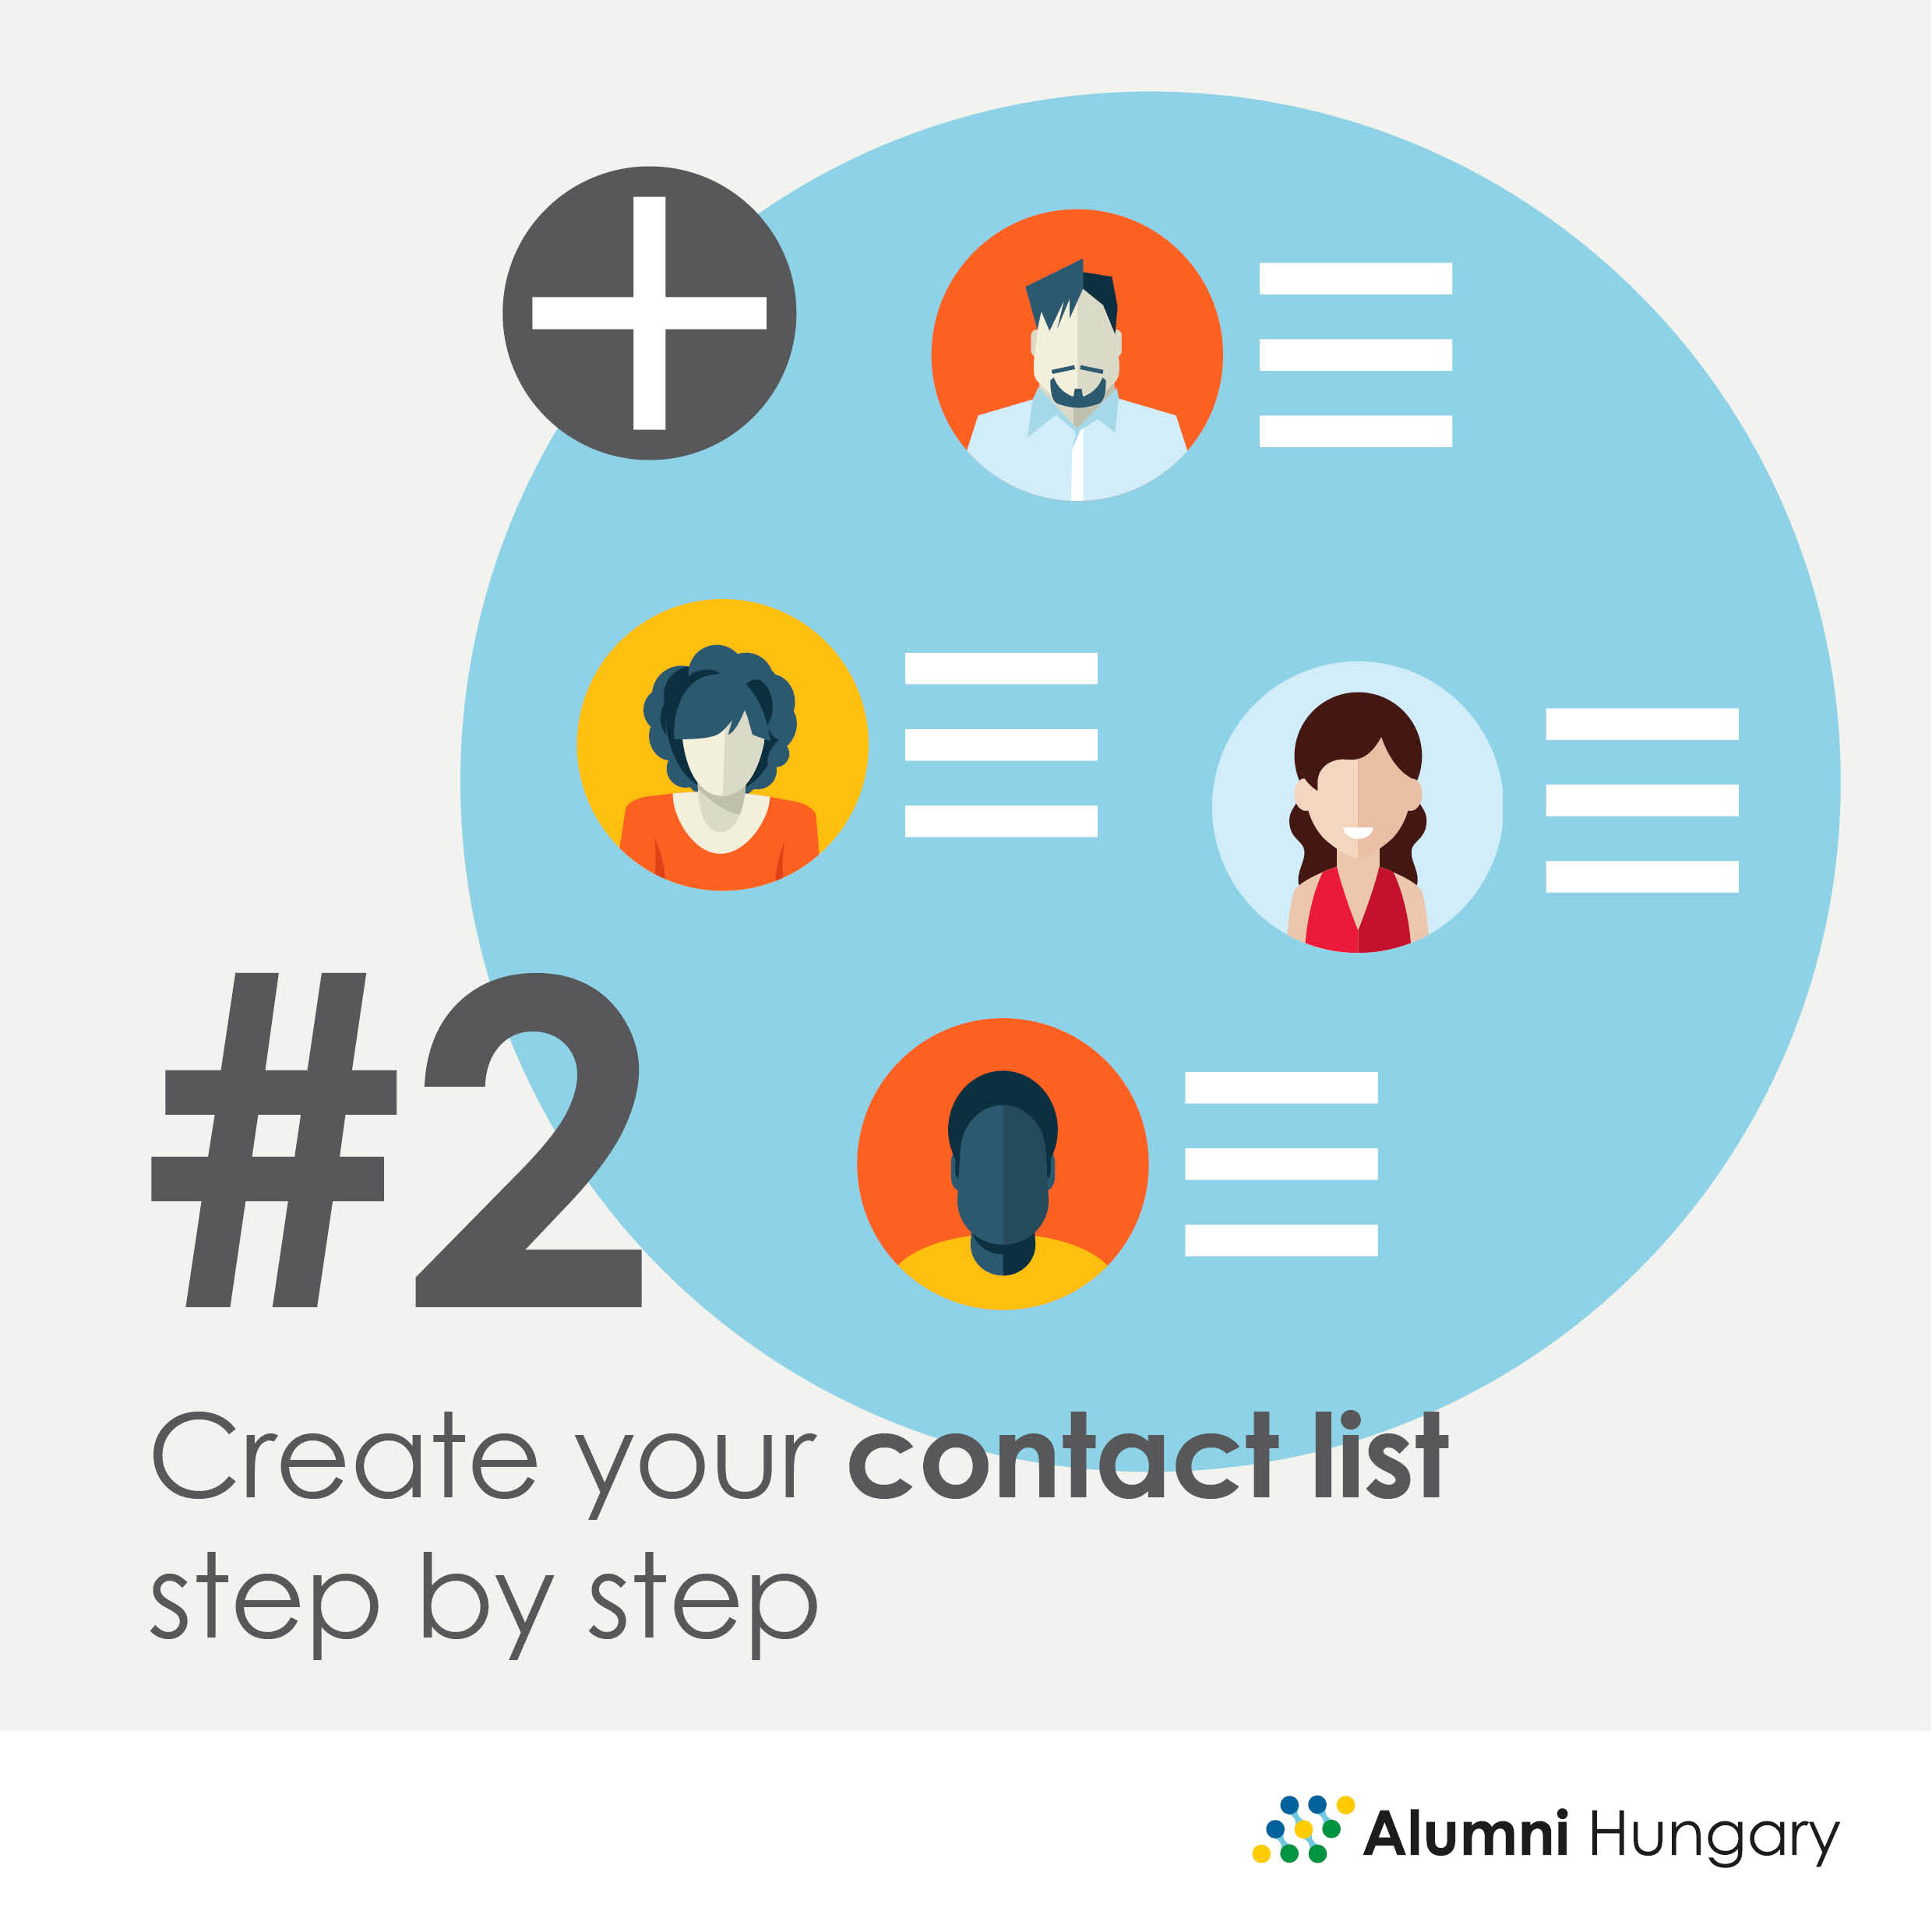 Create your contact list step by step